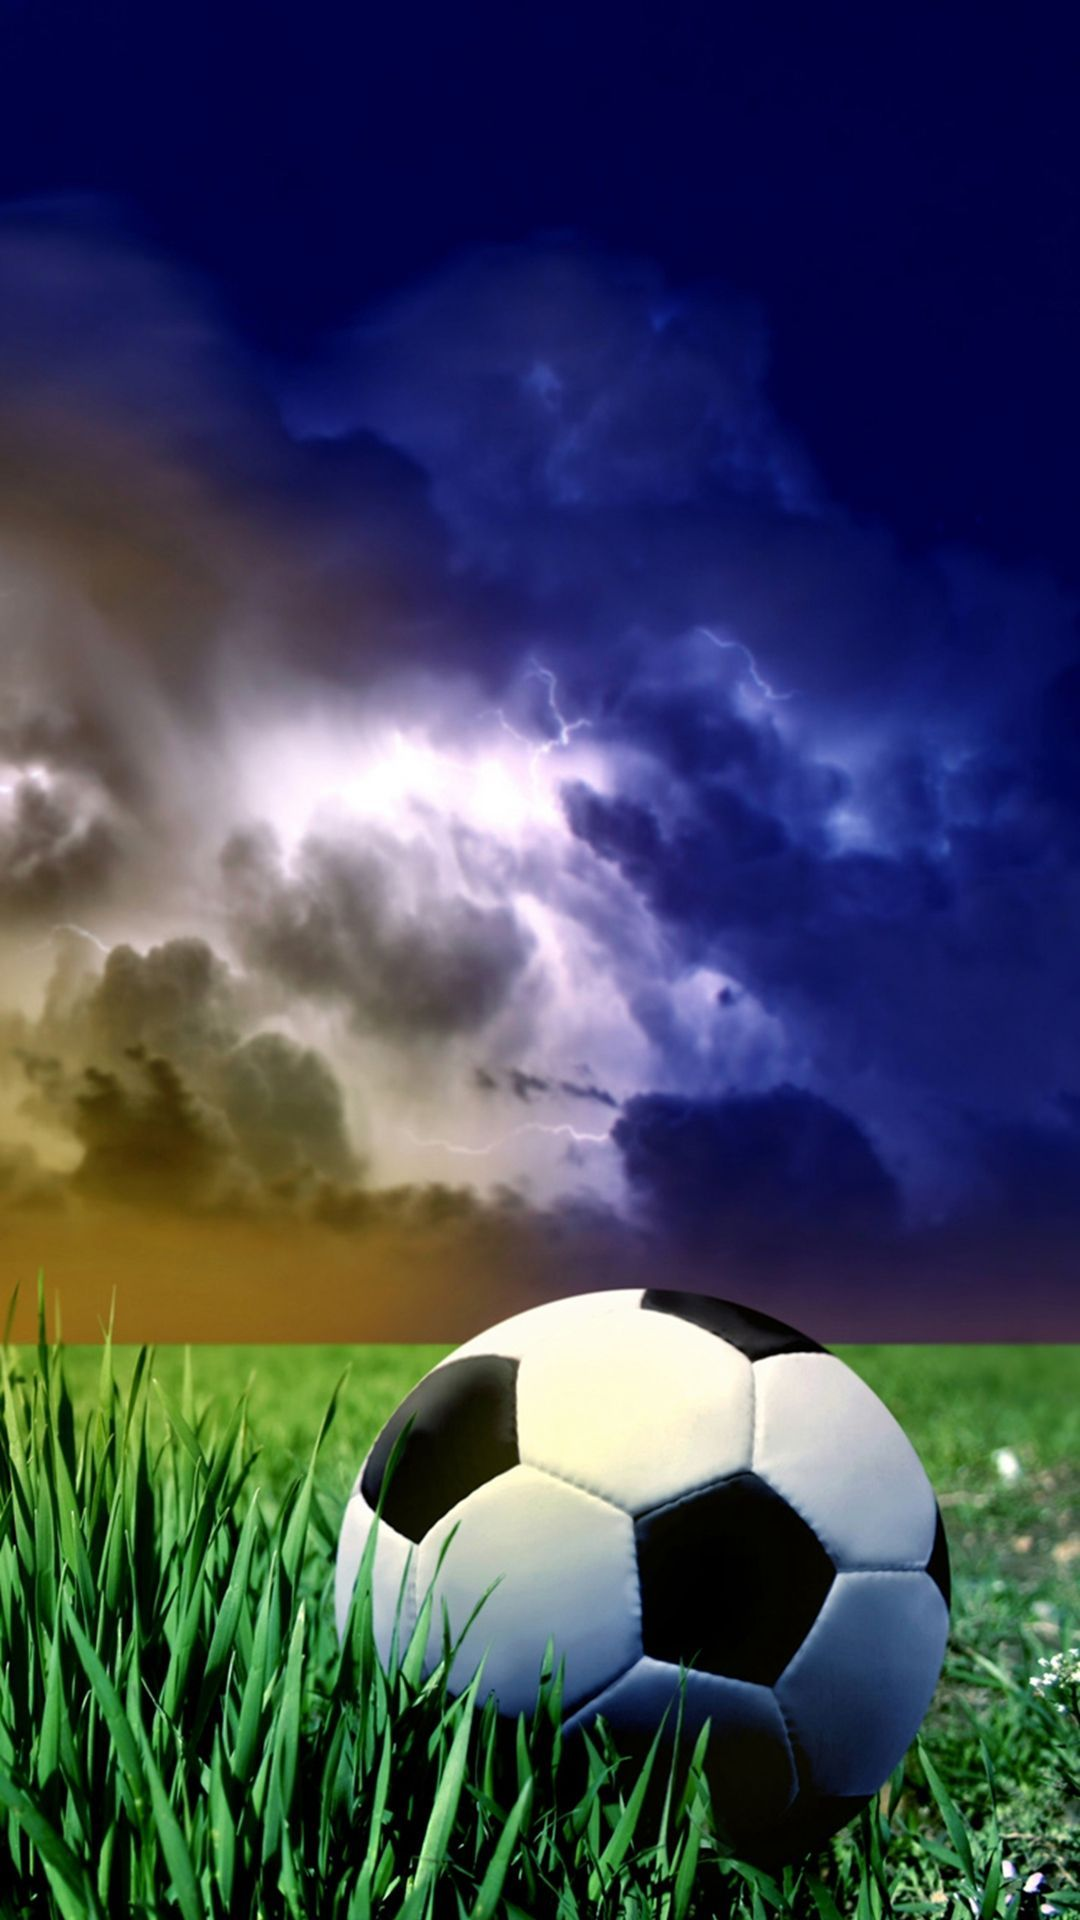 Football Sports Android Background Flip Wallpapers Download Free Wallpaper Hd In 2020 Football Wallpaper Soccer Pictures Sports Images